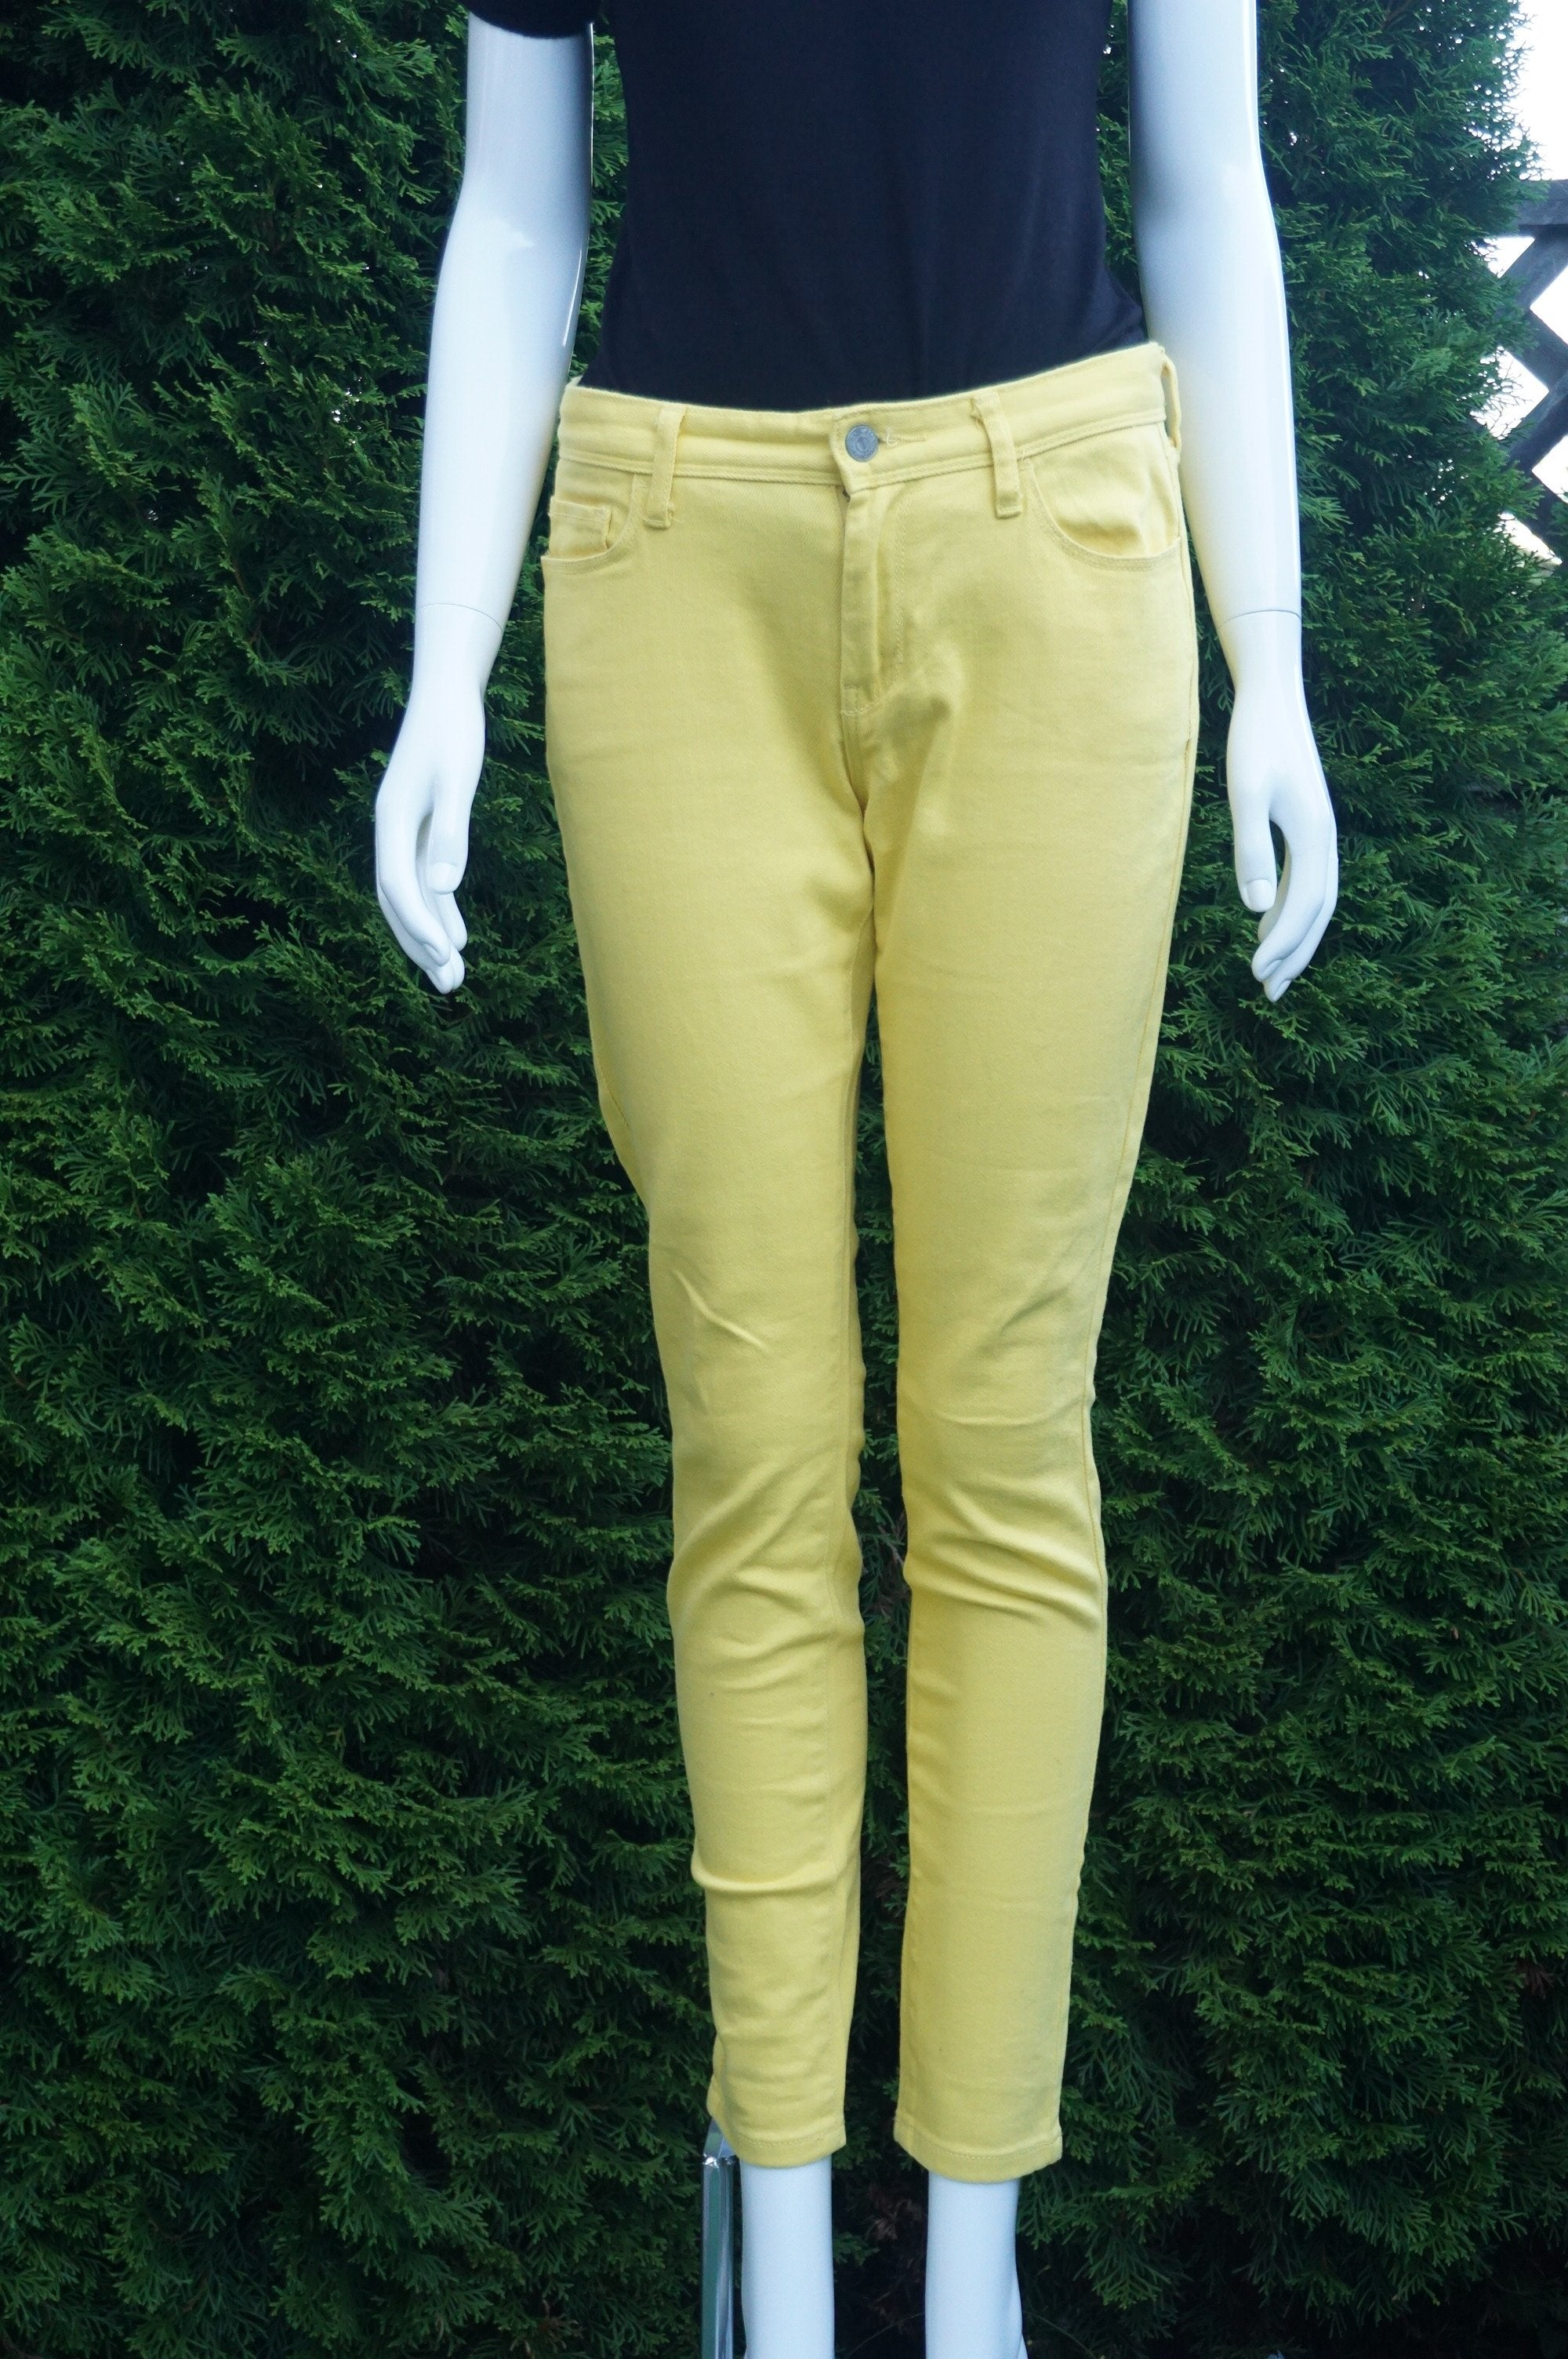 Banana Republic Yellow Pants/Jeans, Waist 30 inches, length 37 inches, inseam 27 inches, Yellow, women's Pants, women's Yellow Pants, Banana Republic women's Pants, bright color pants, yellow pants, yellow skinny jeans